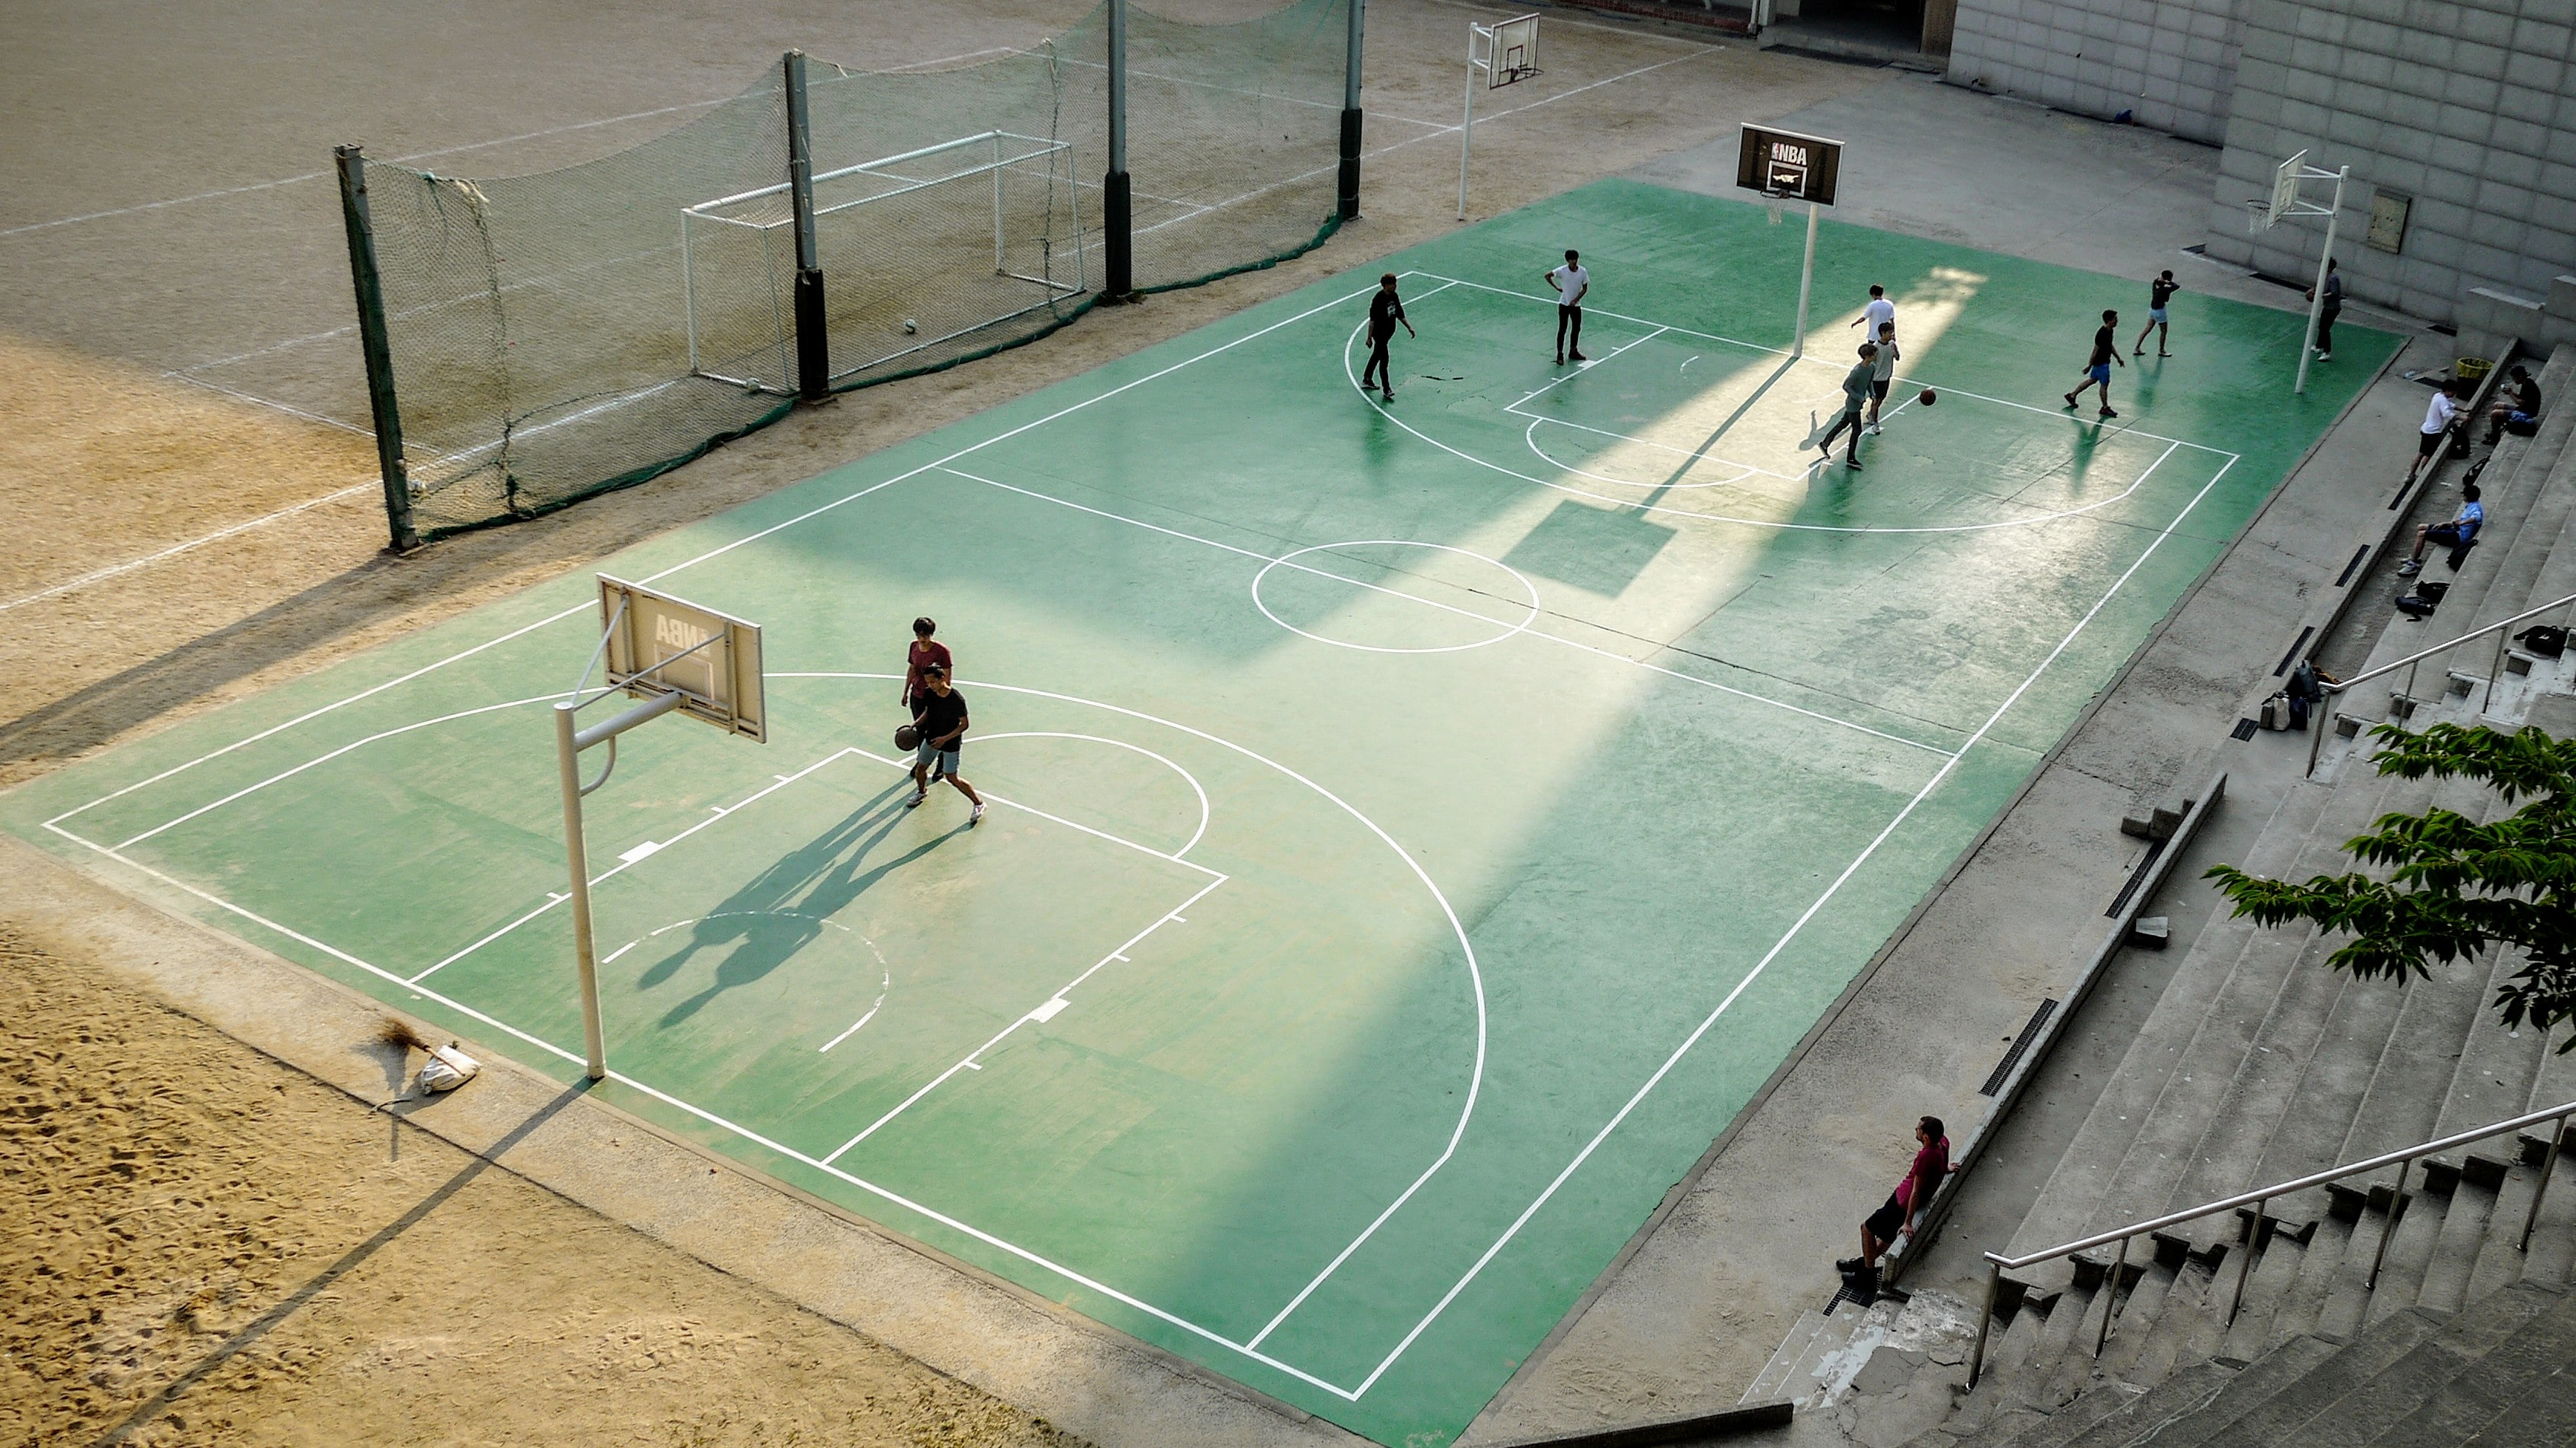 People playing basketball on a green basketball court with bleachers